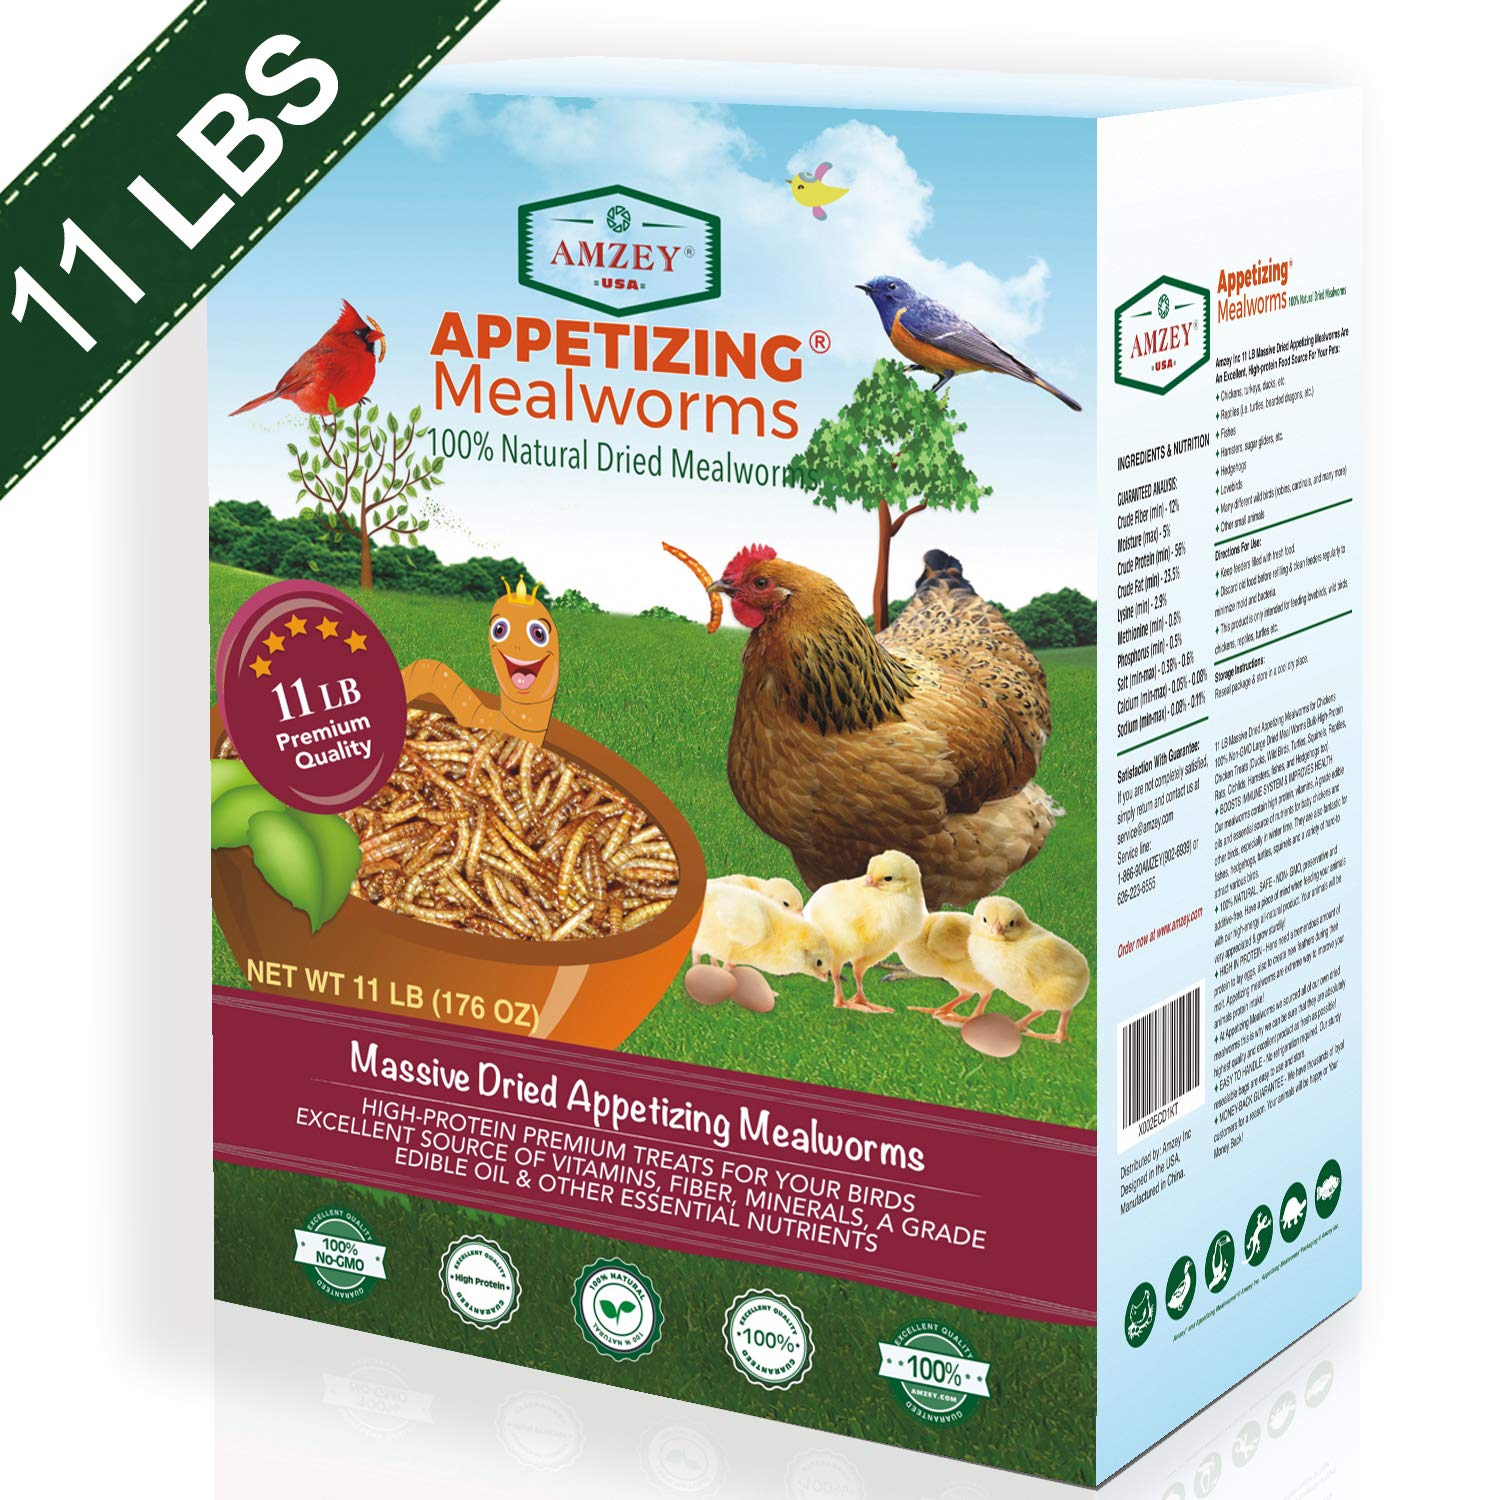 Dried Mealworms 11 LBS – 100% Natural for Chicken Feed, Bird Food, Fish Food, Turtle Food, Duck Food, Reptile Food, Non…